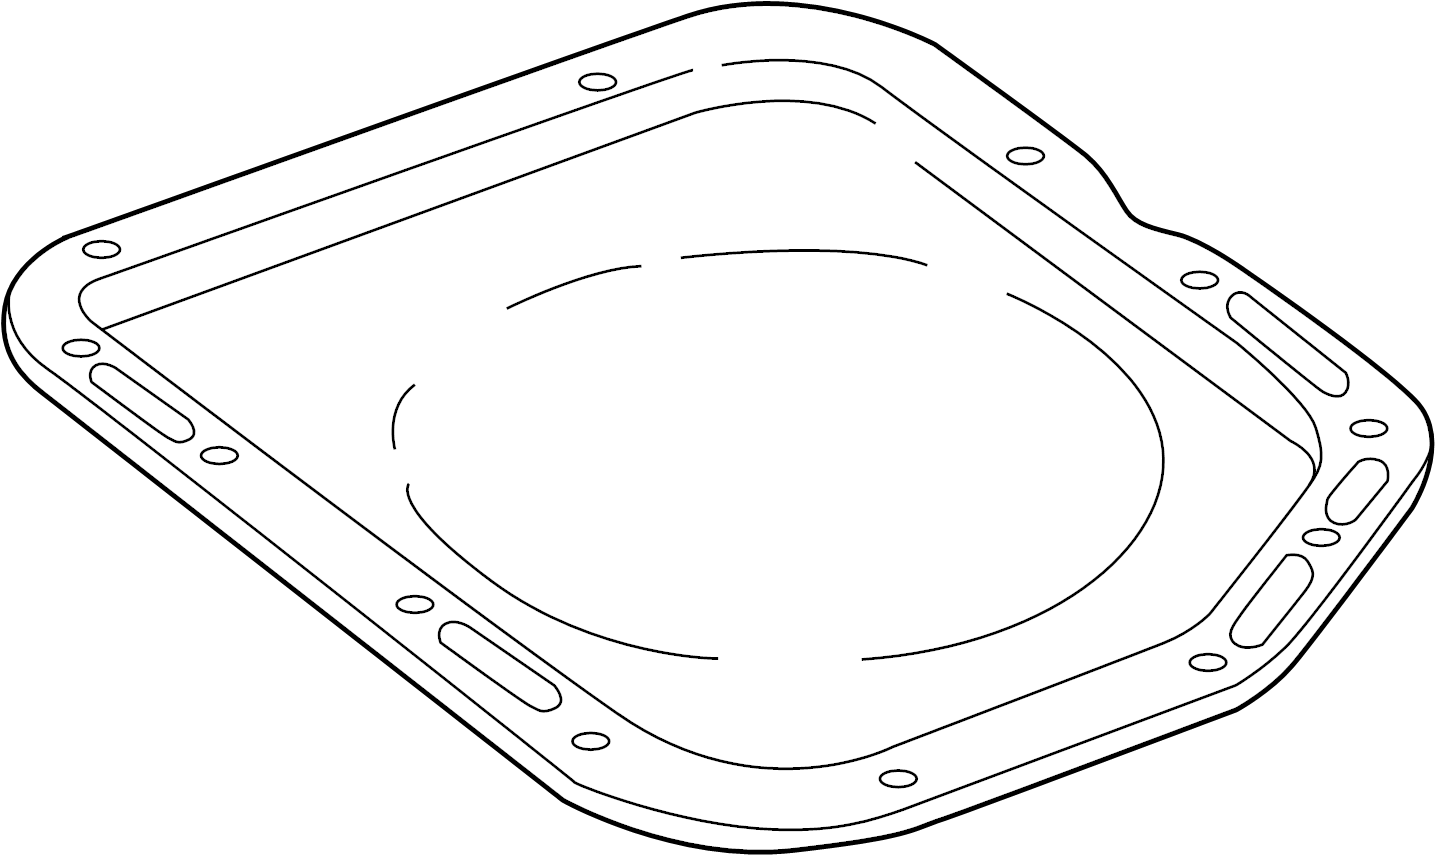 Ford Explorer Automatic Transmission Oil Pan. 3.3 LITER